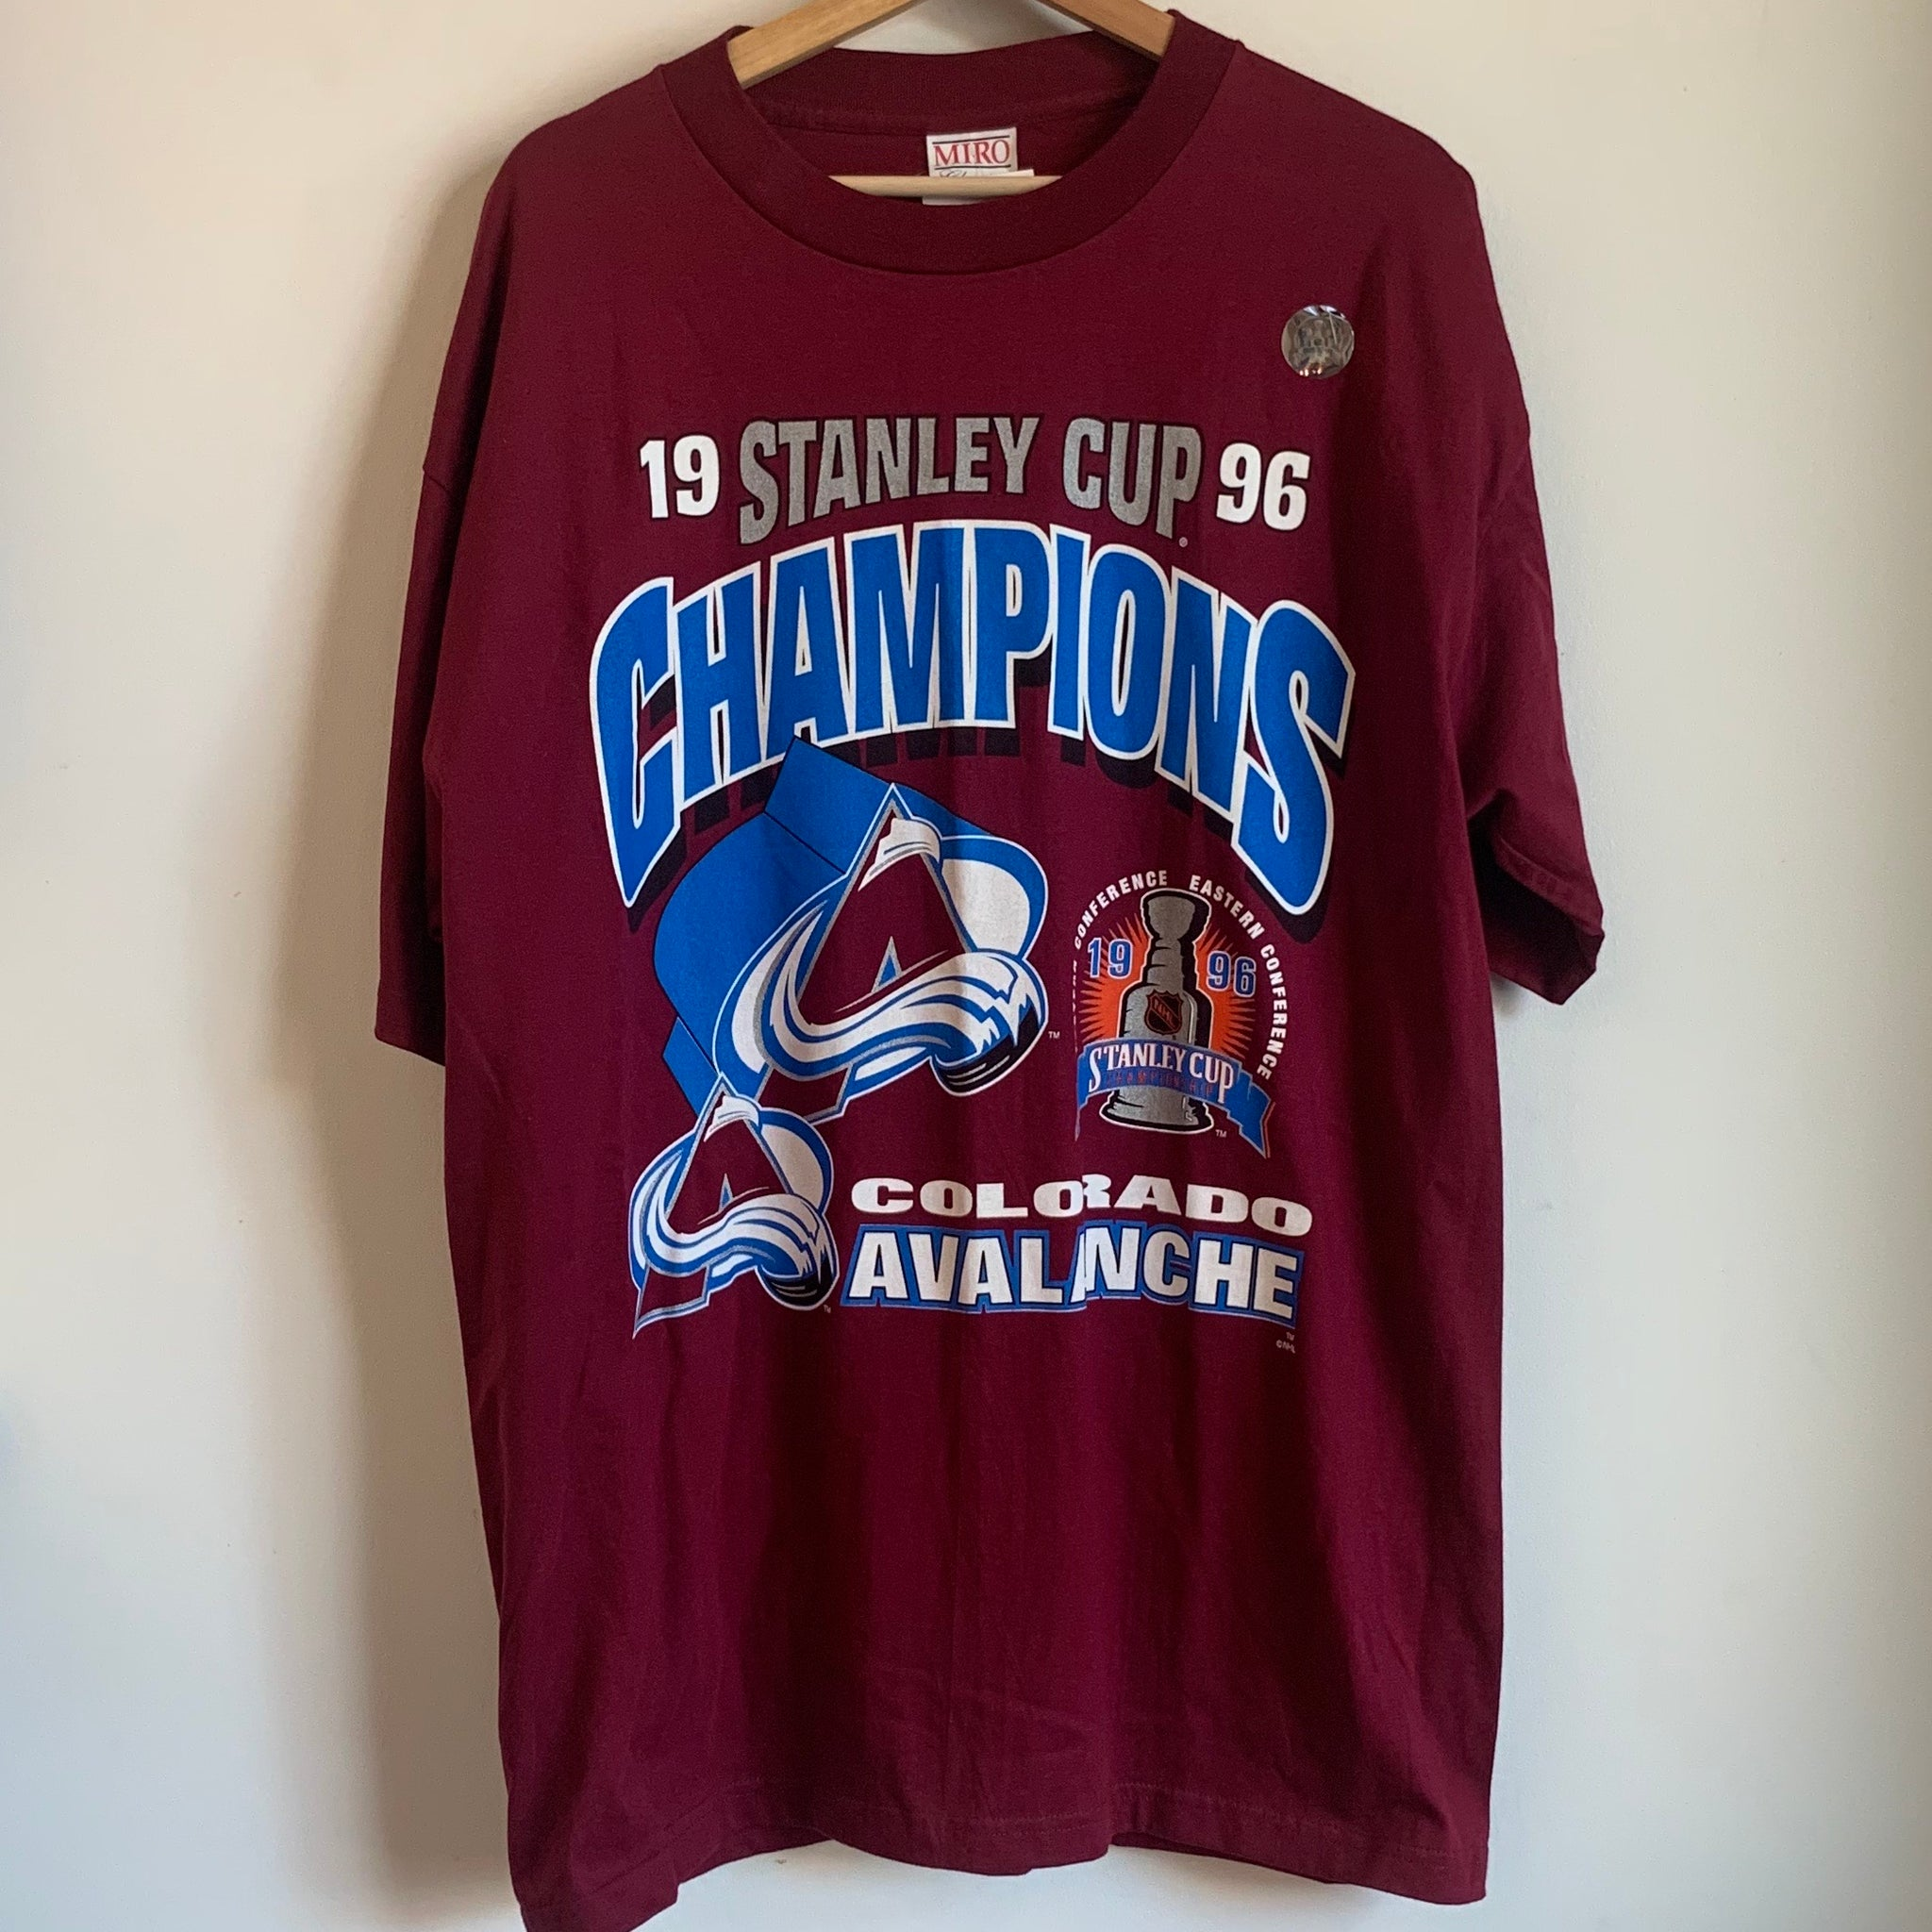 1996 Colorado Avalanche Stanley Cup Champions Maroon Tee Shirt